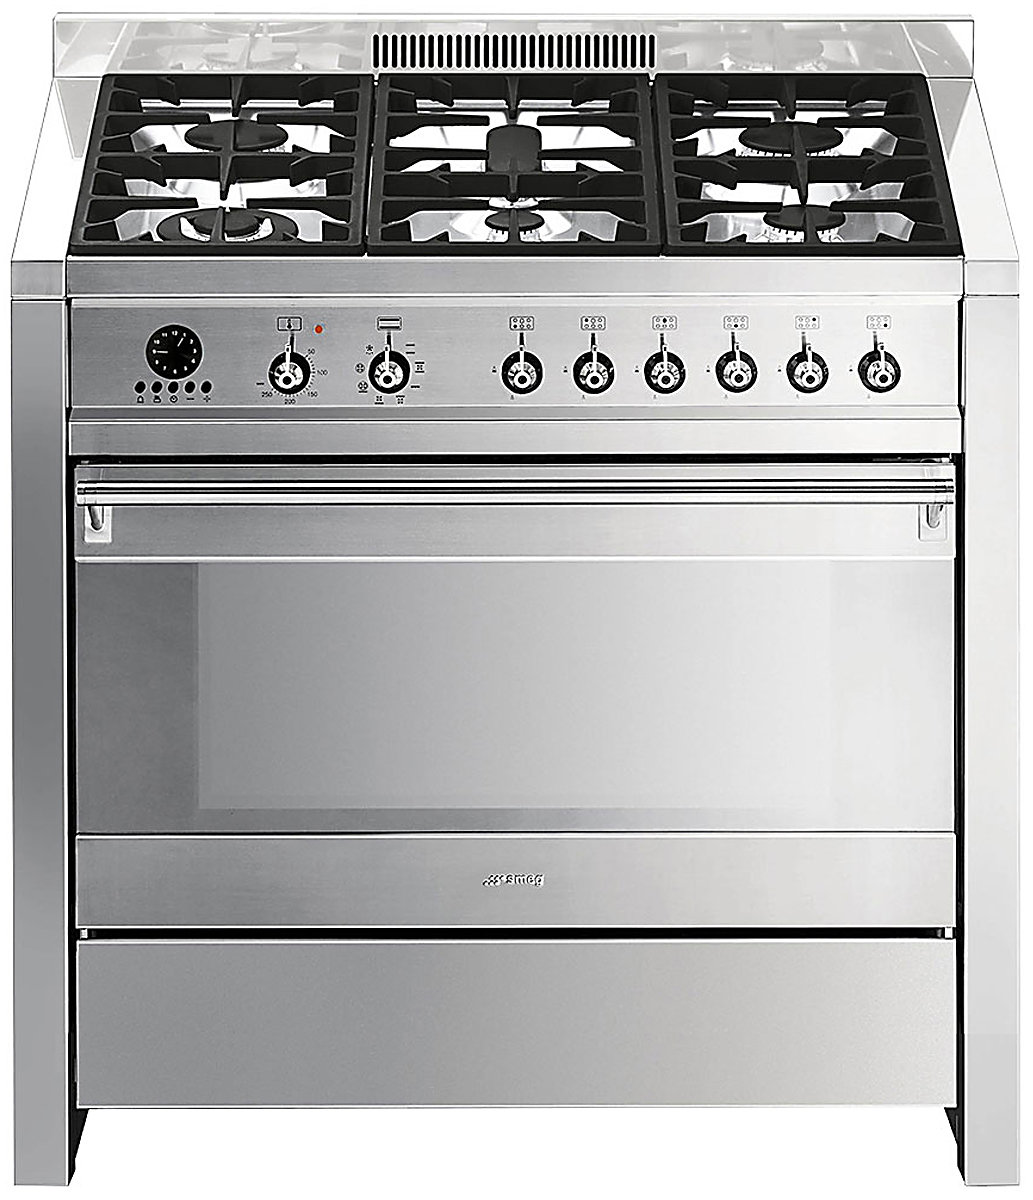 Smeg A11x 7 90cm Classic Aesthetic Freestanding Dual Fuel Oven Stove Electric Stainless Steel Winning Appliances Online